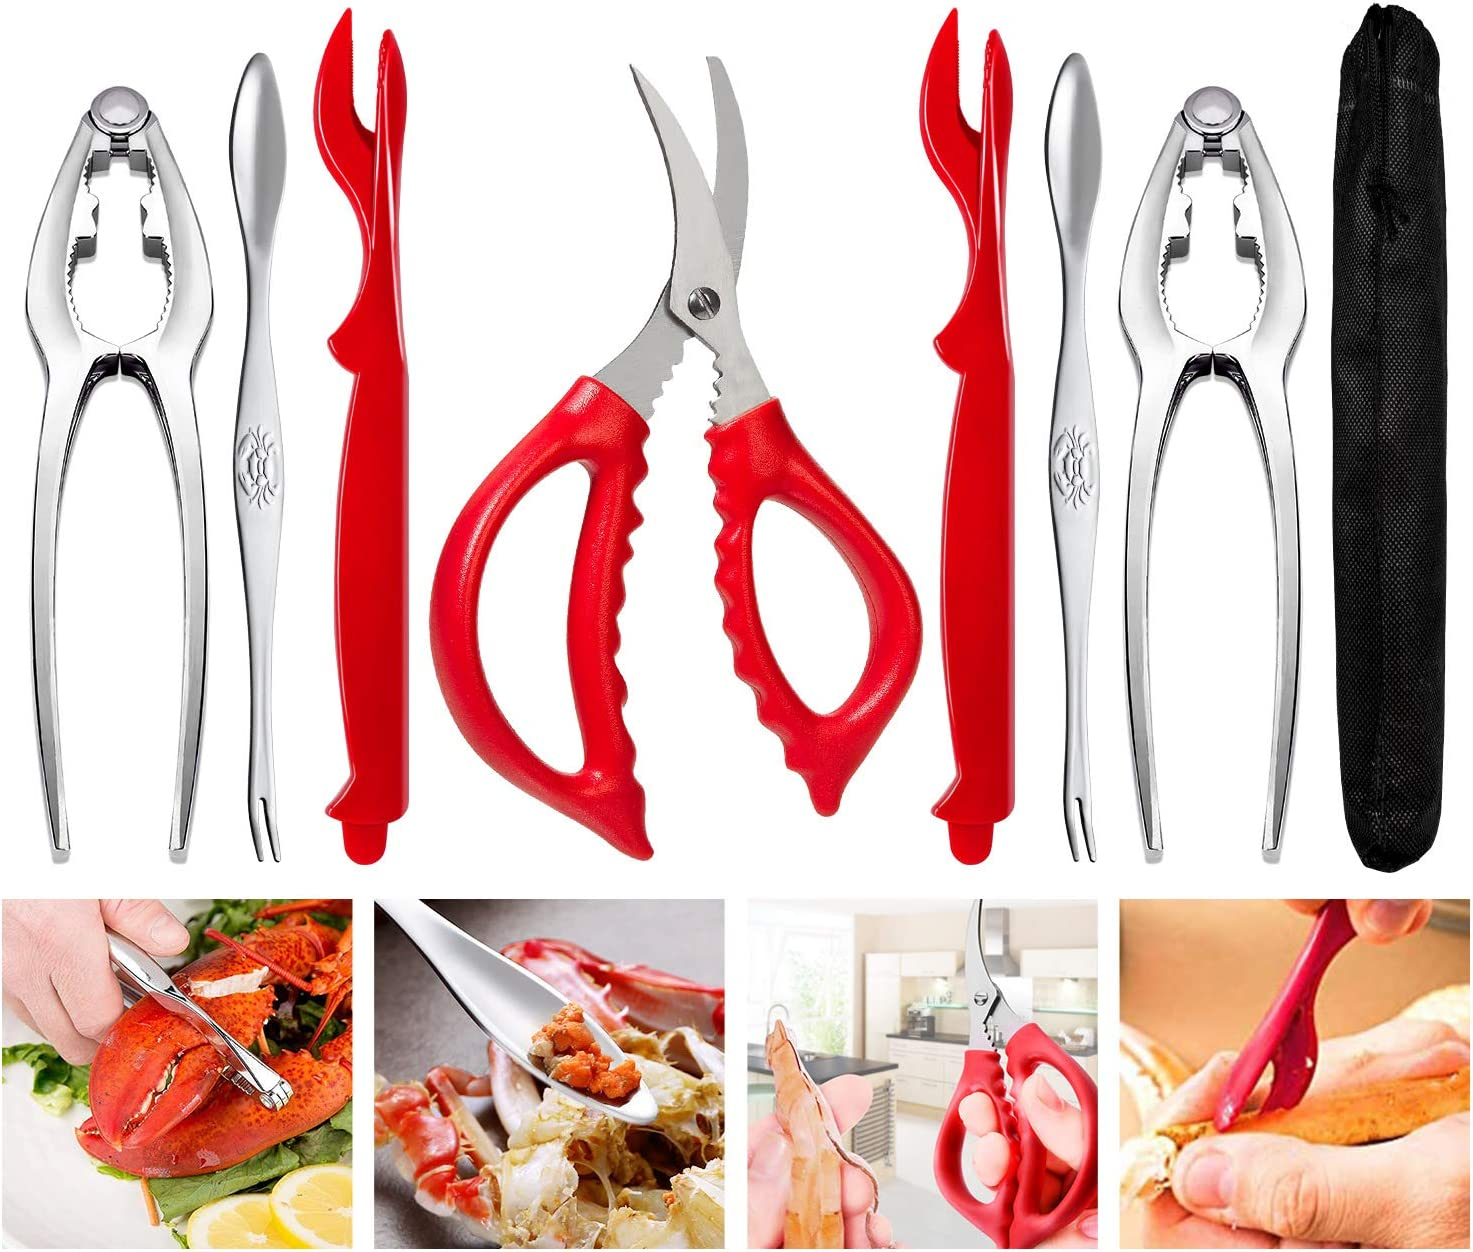 Crab Crackers and Tools Picks Regular outlet store Set Leg